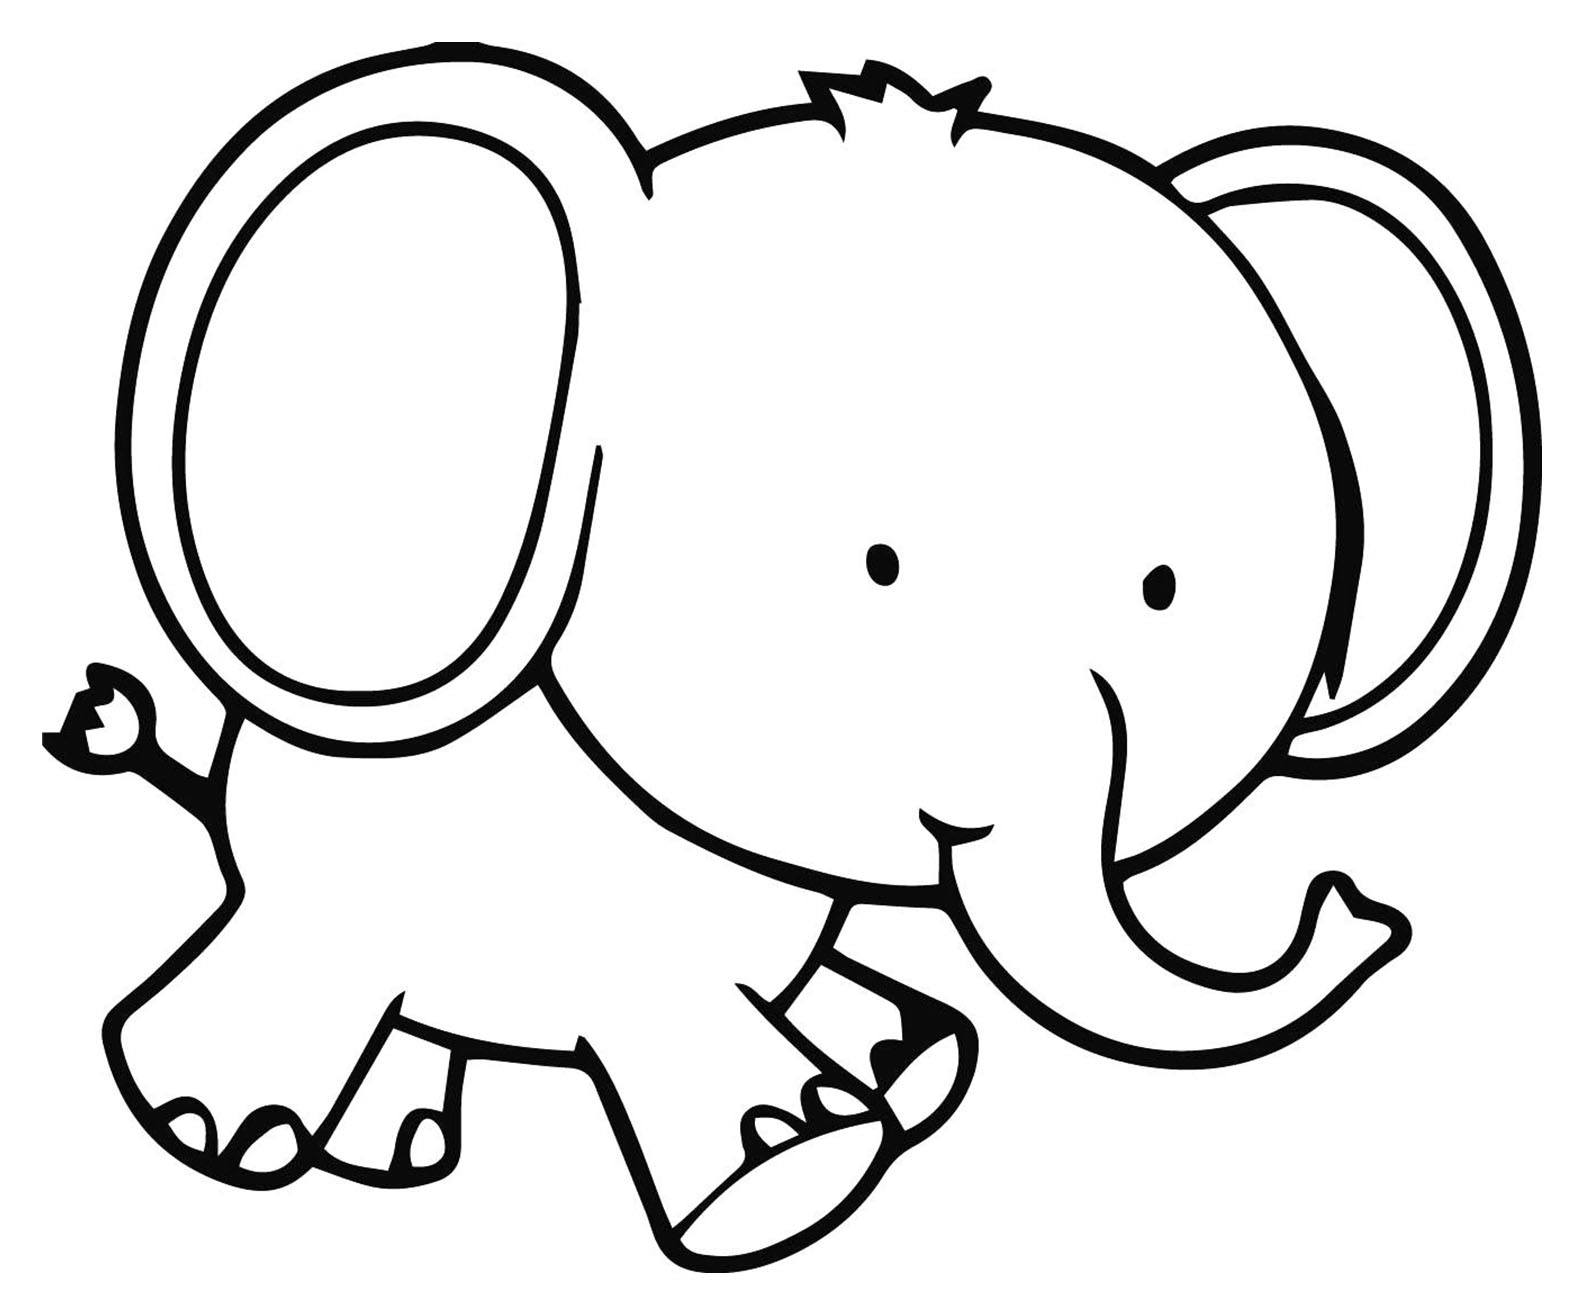 Elephants for children - Elephants Kids Coloring Pages